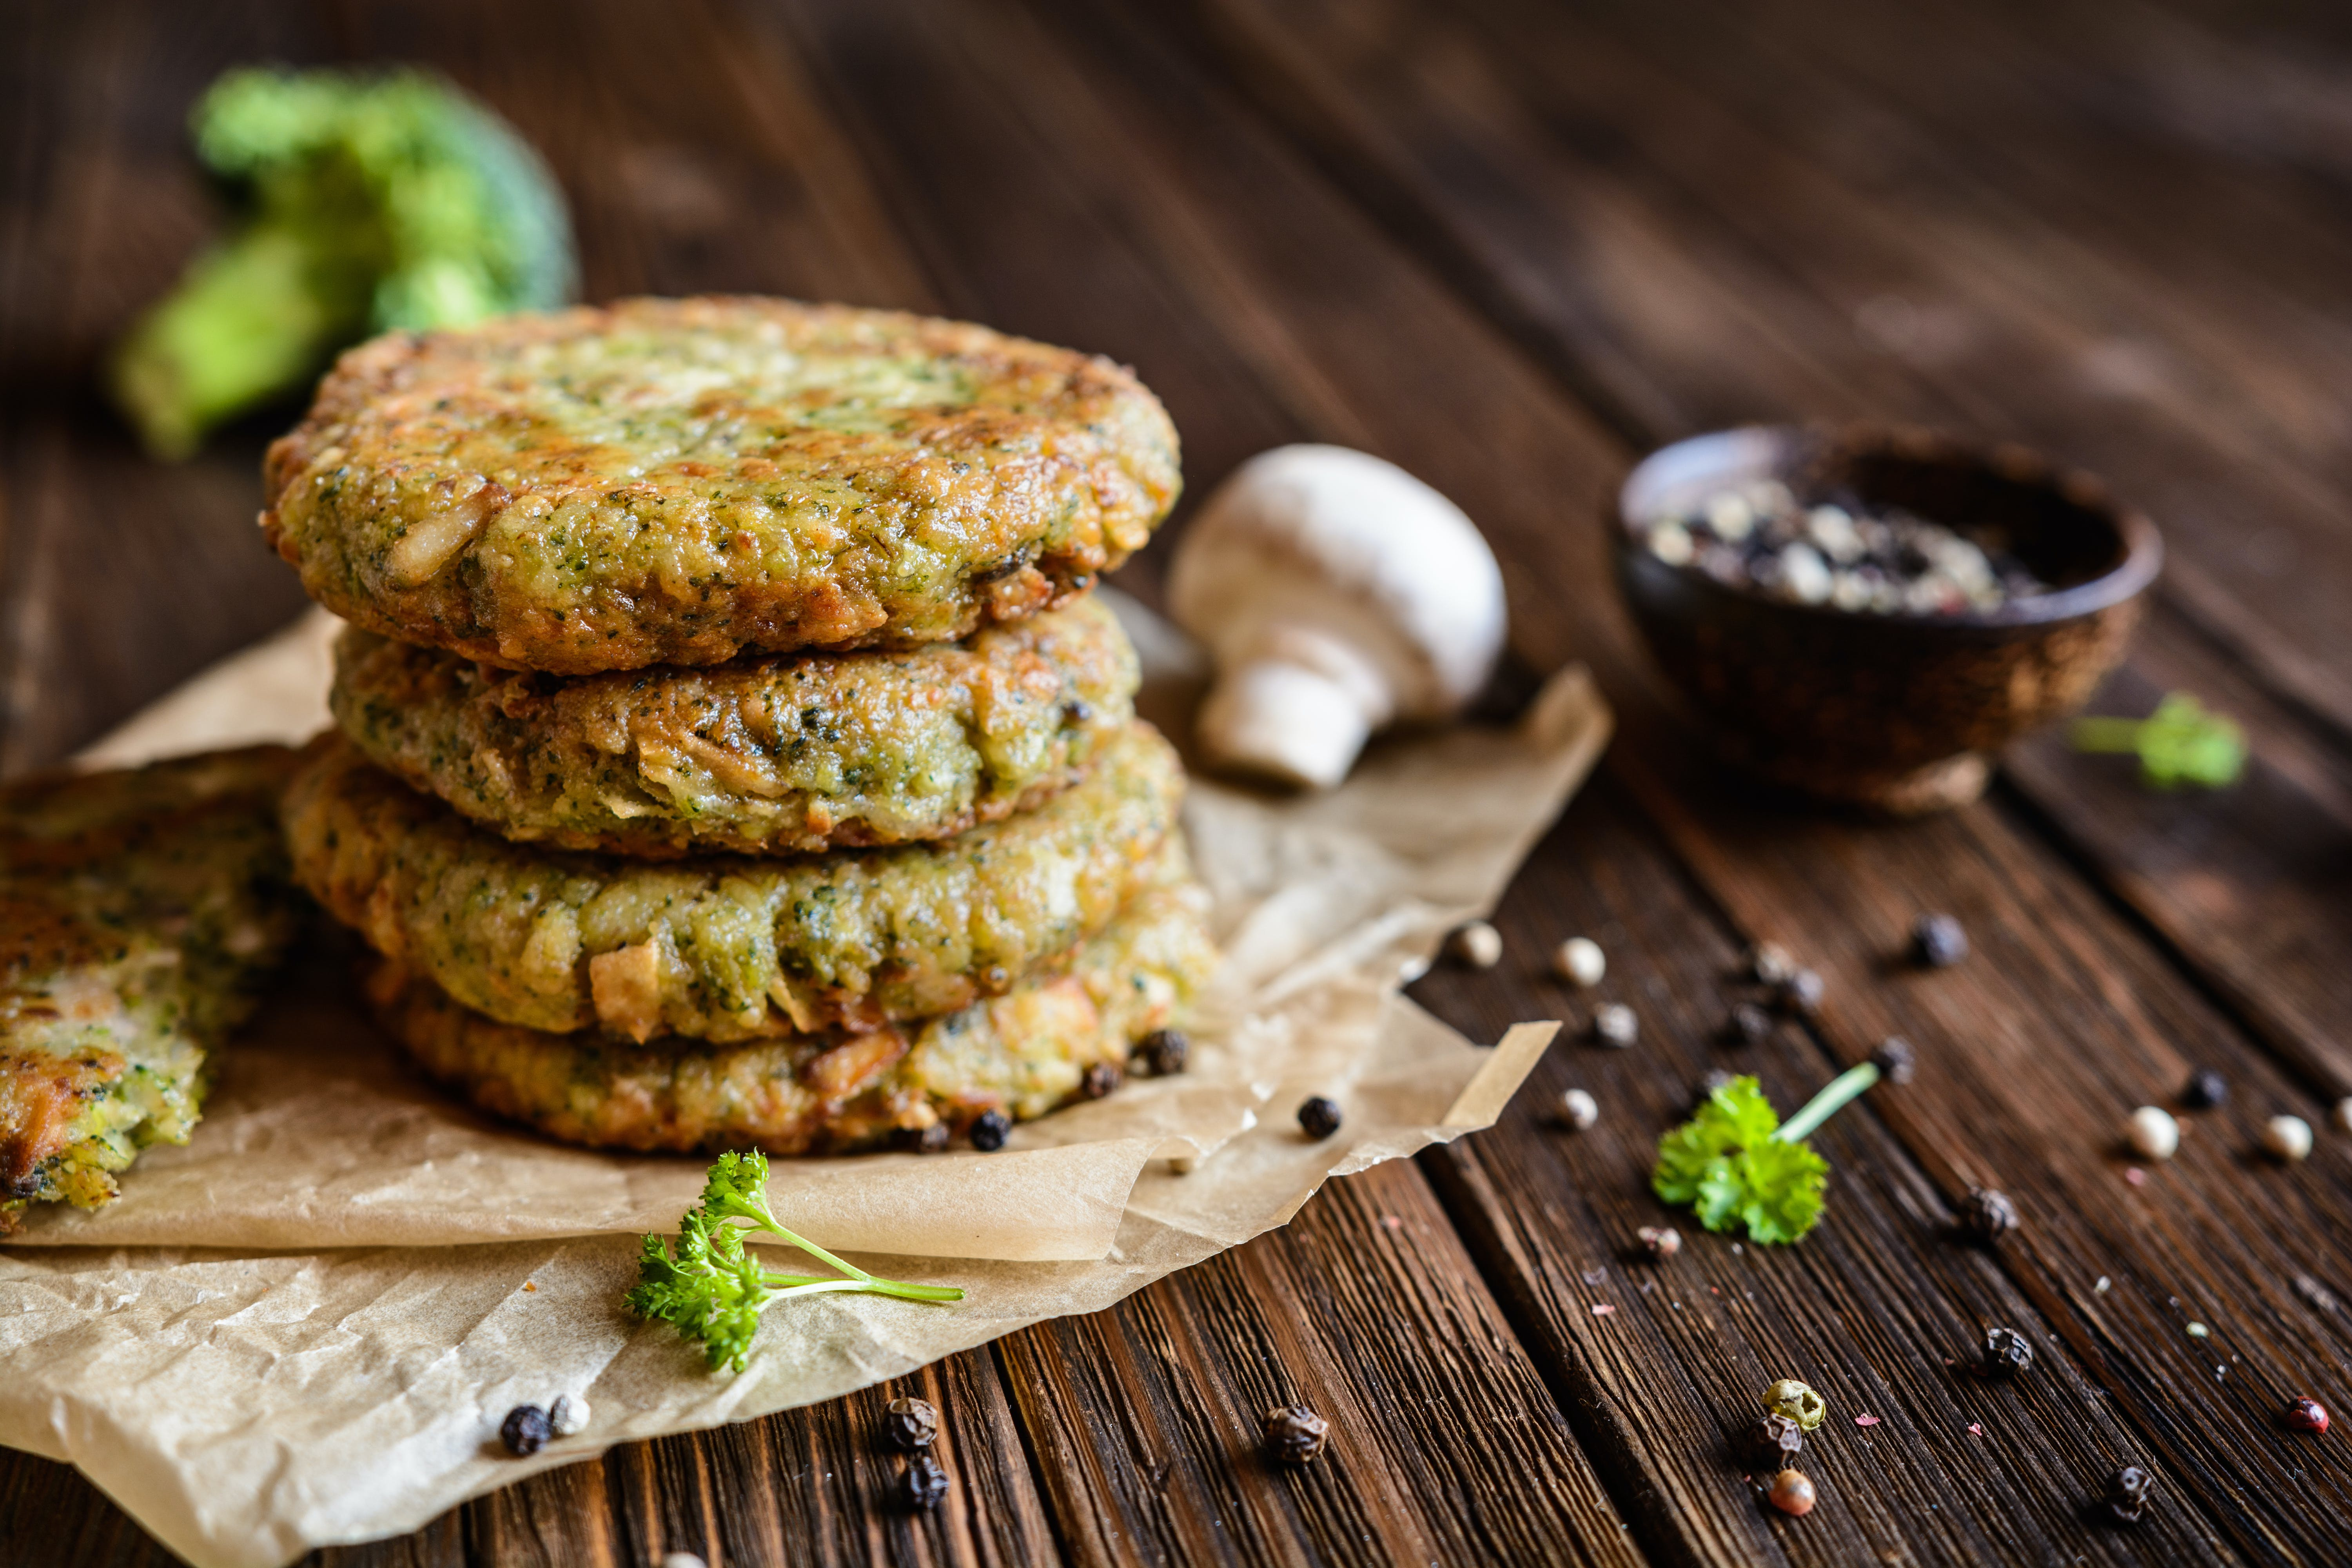 Broccoli and Mushroom Burgers